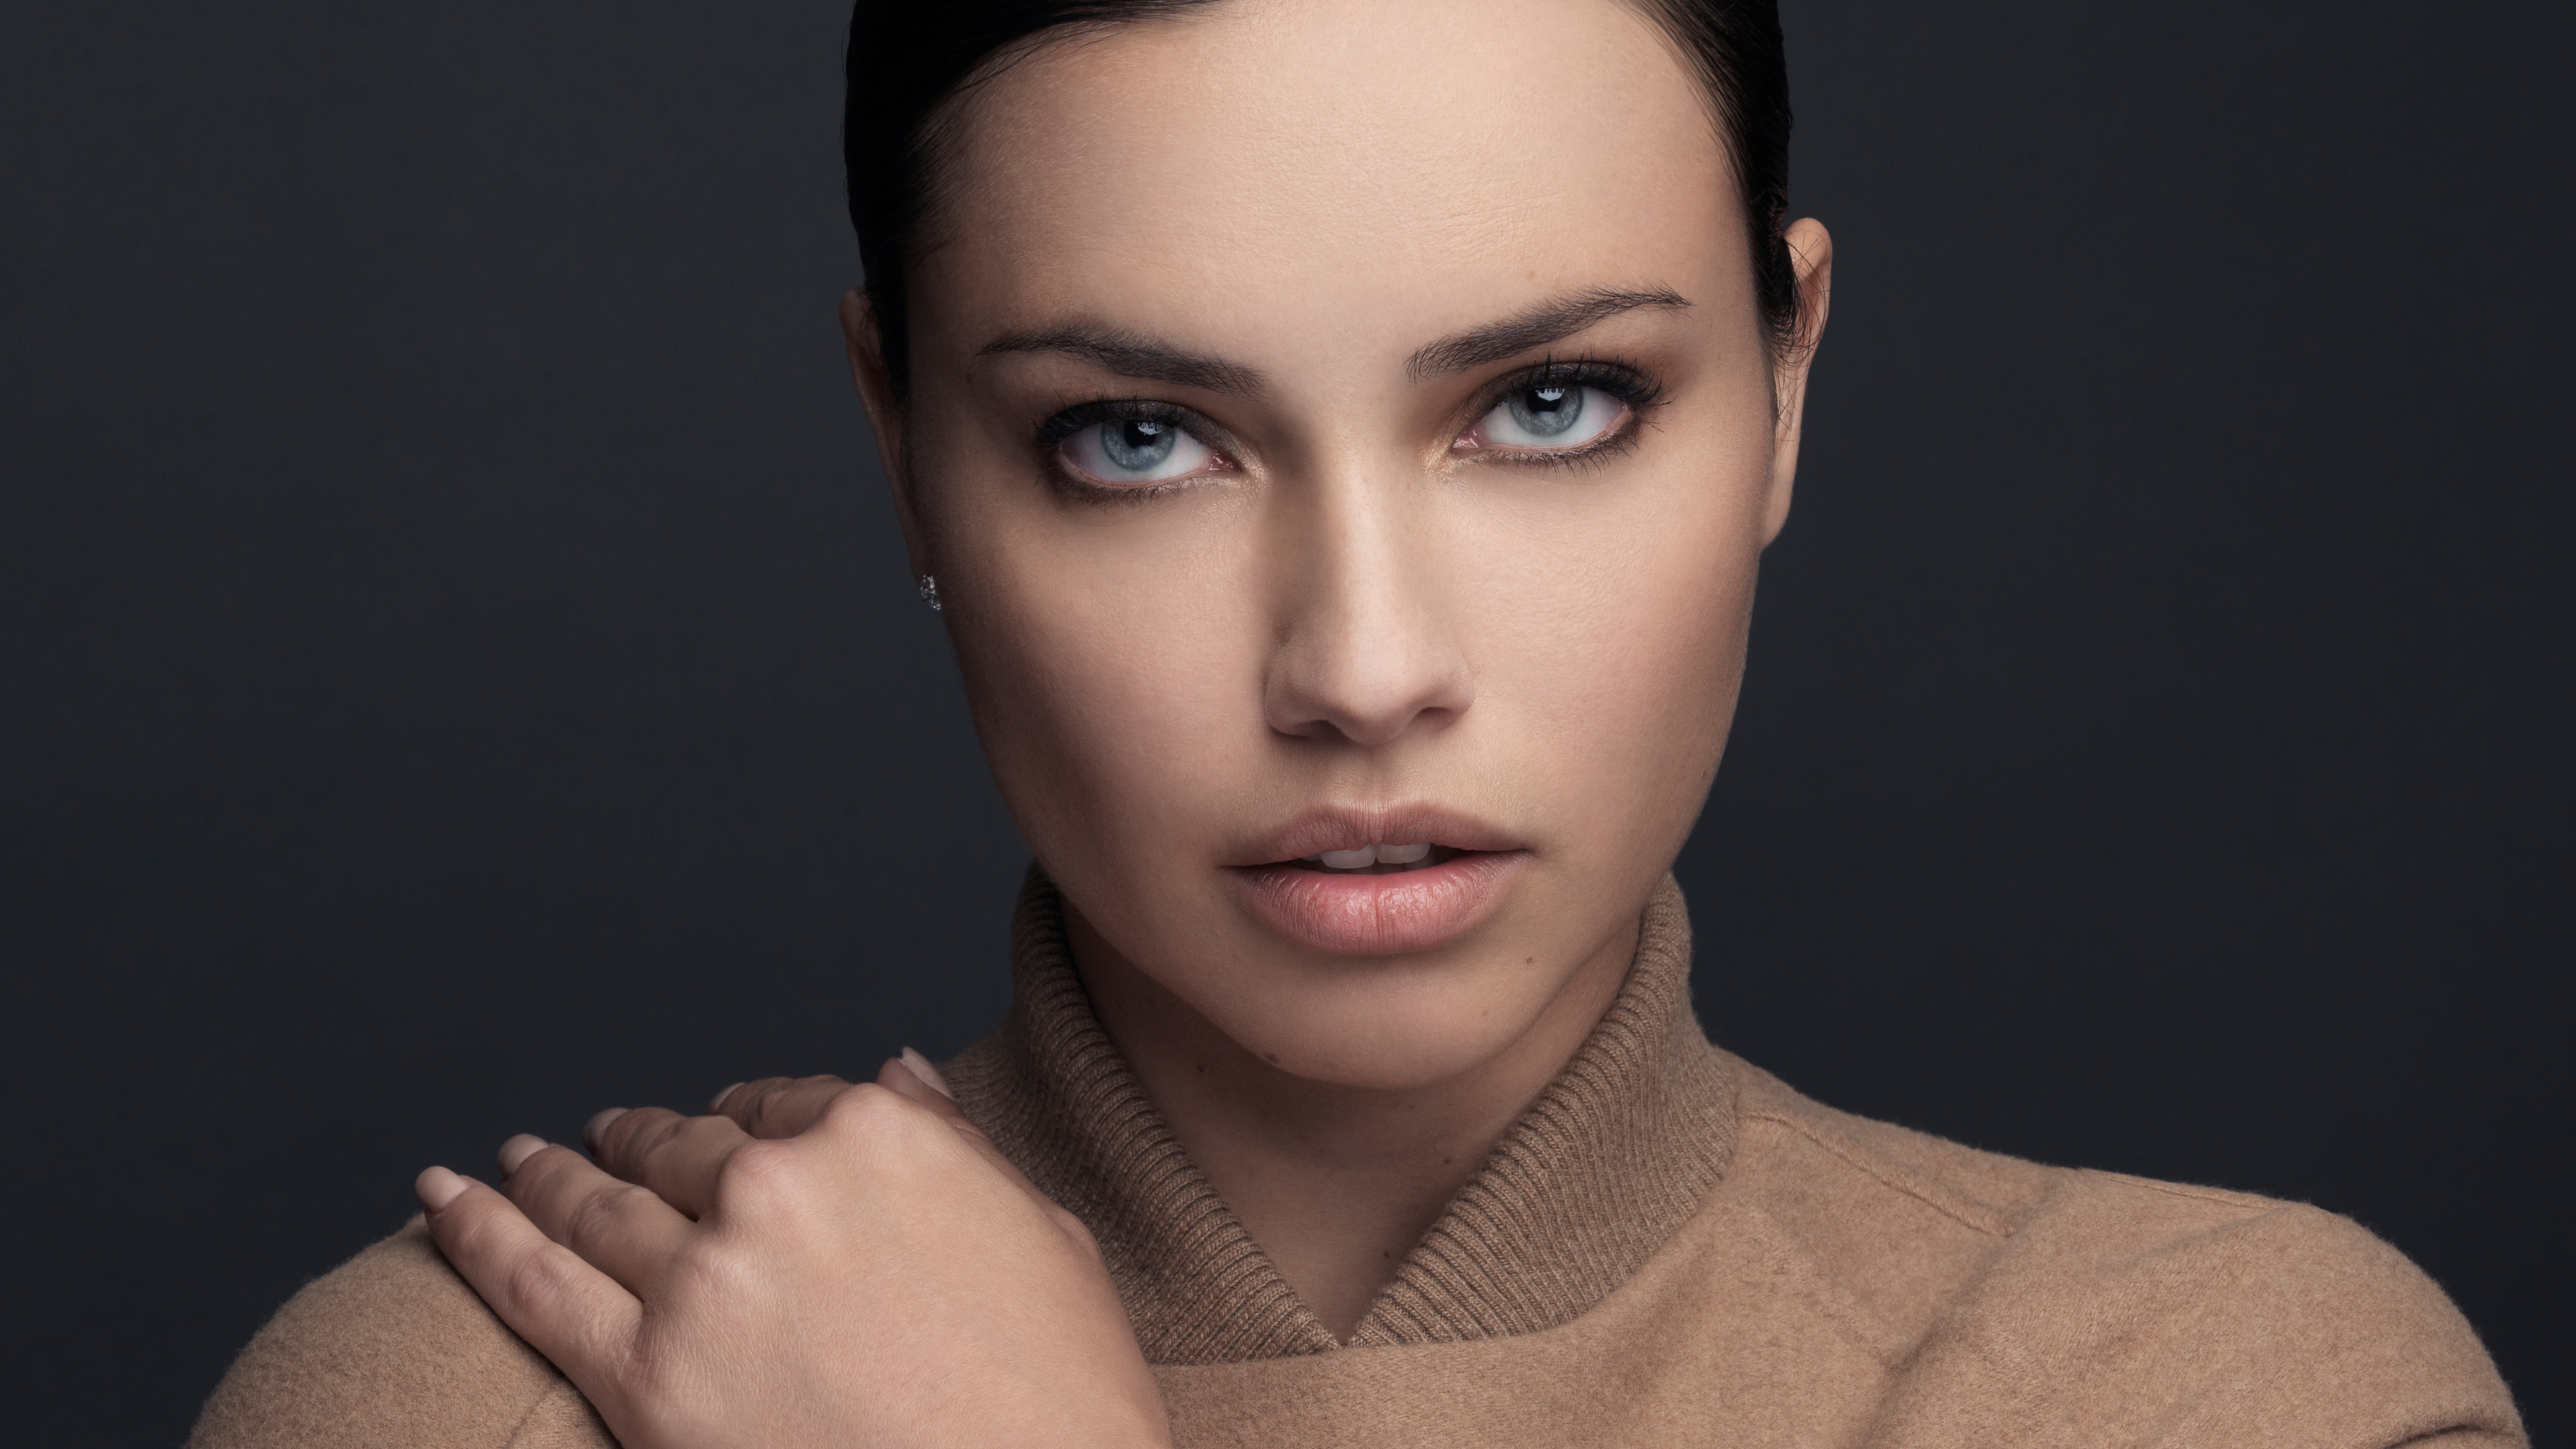 adriana lima 4k new 1542824638 - Adriana Lima 4k New - model wallpapers, hd-wallpapers, girls wallpapers, celebrities wallpapers, adriana lima wallpapers, 4k-wallpapers